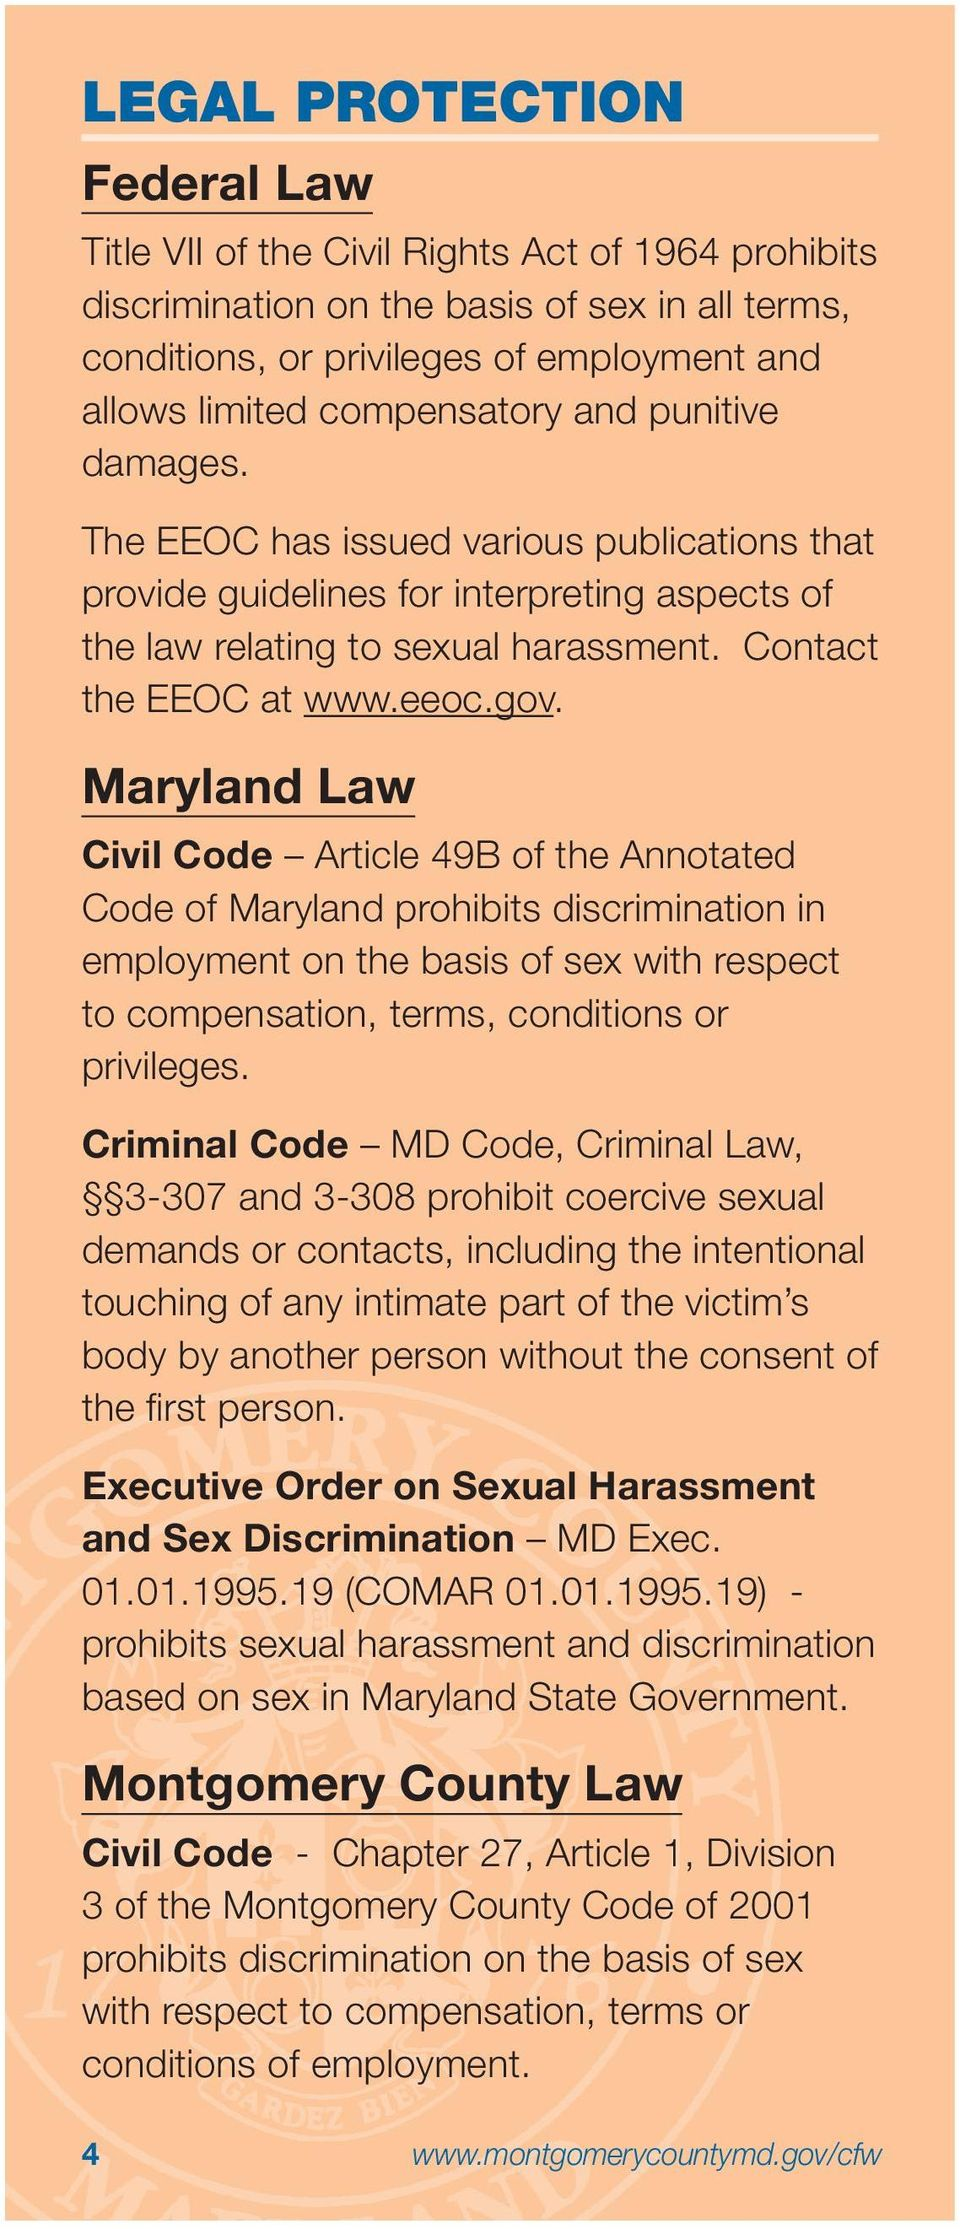 Maryland Law Civil Code Article 49B of the Annotated Code of Maryland prohibits discrimination in employment on the basis of sex with respect to compensation, terms, conditions or privileges.